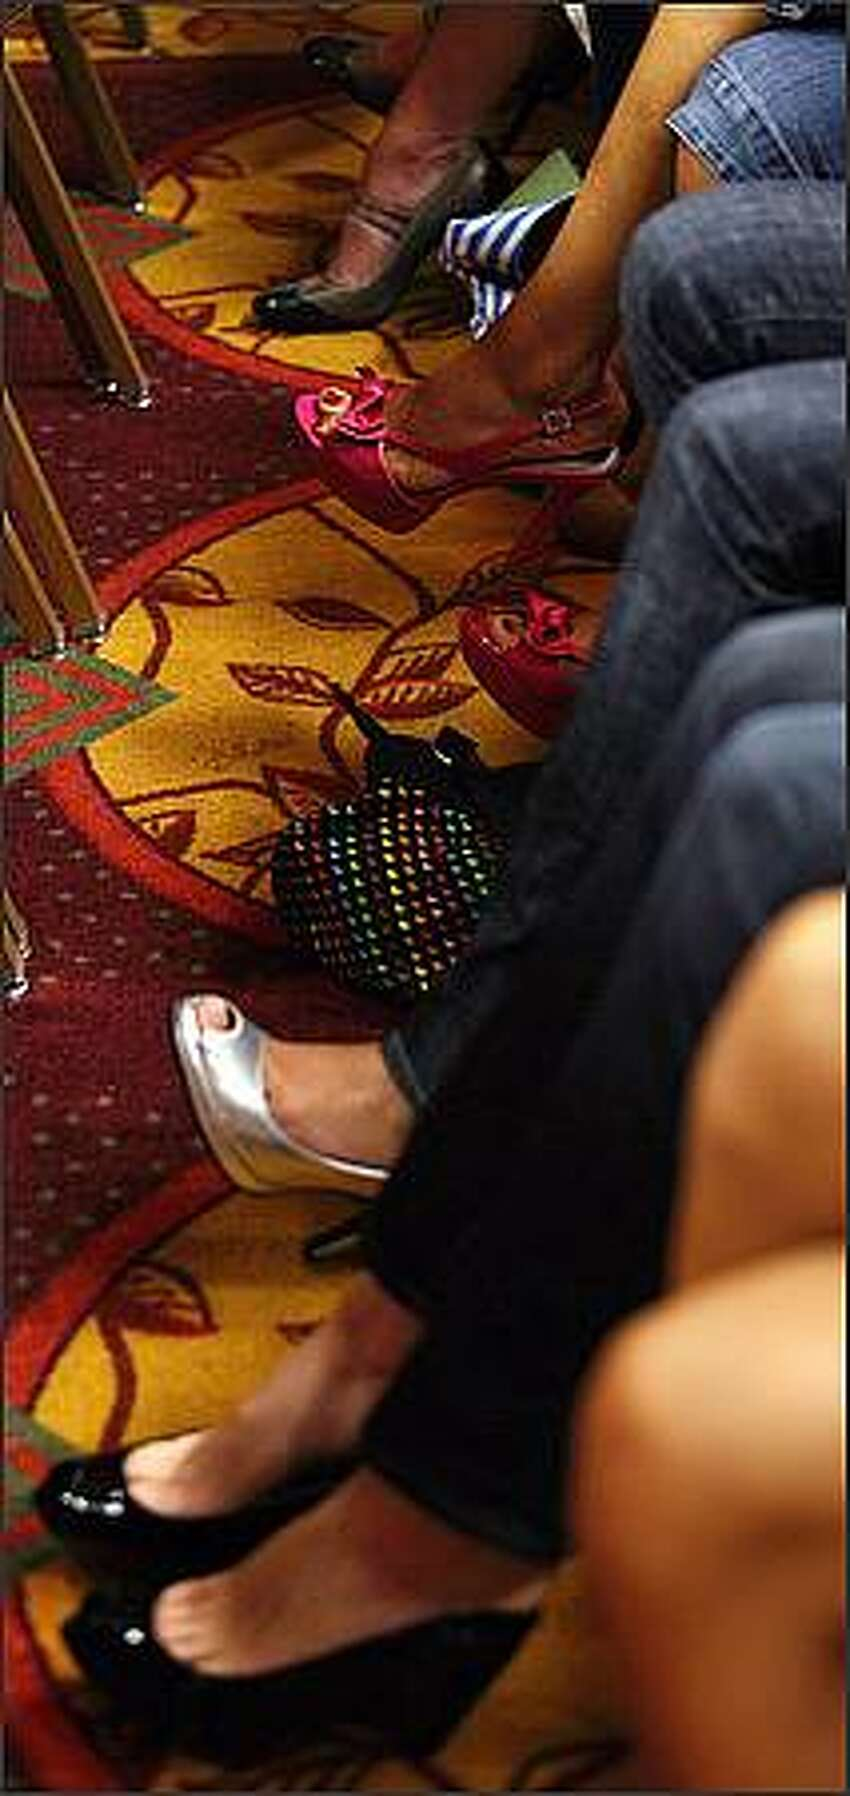 All sorts of colorful shoes donned the feet of Top Model hopefuls at Doubletree Guest Suites during Seattle's America's Next Top Model casting call.